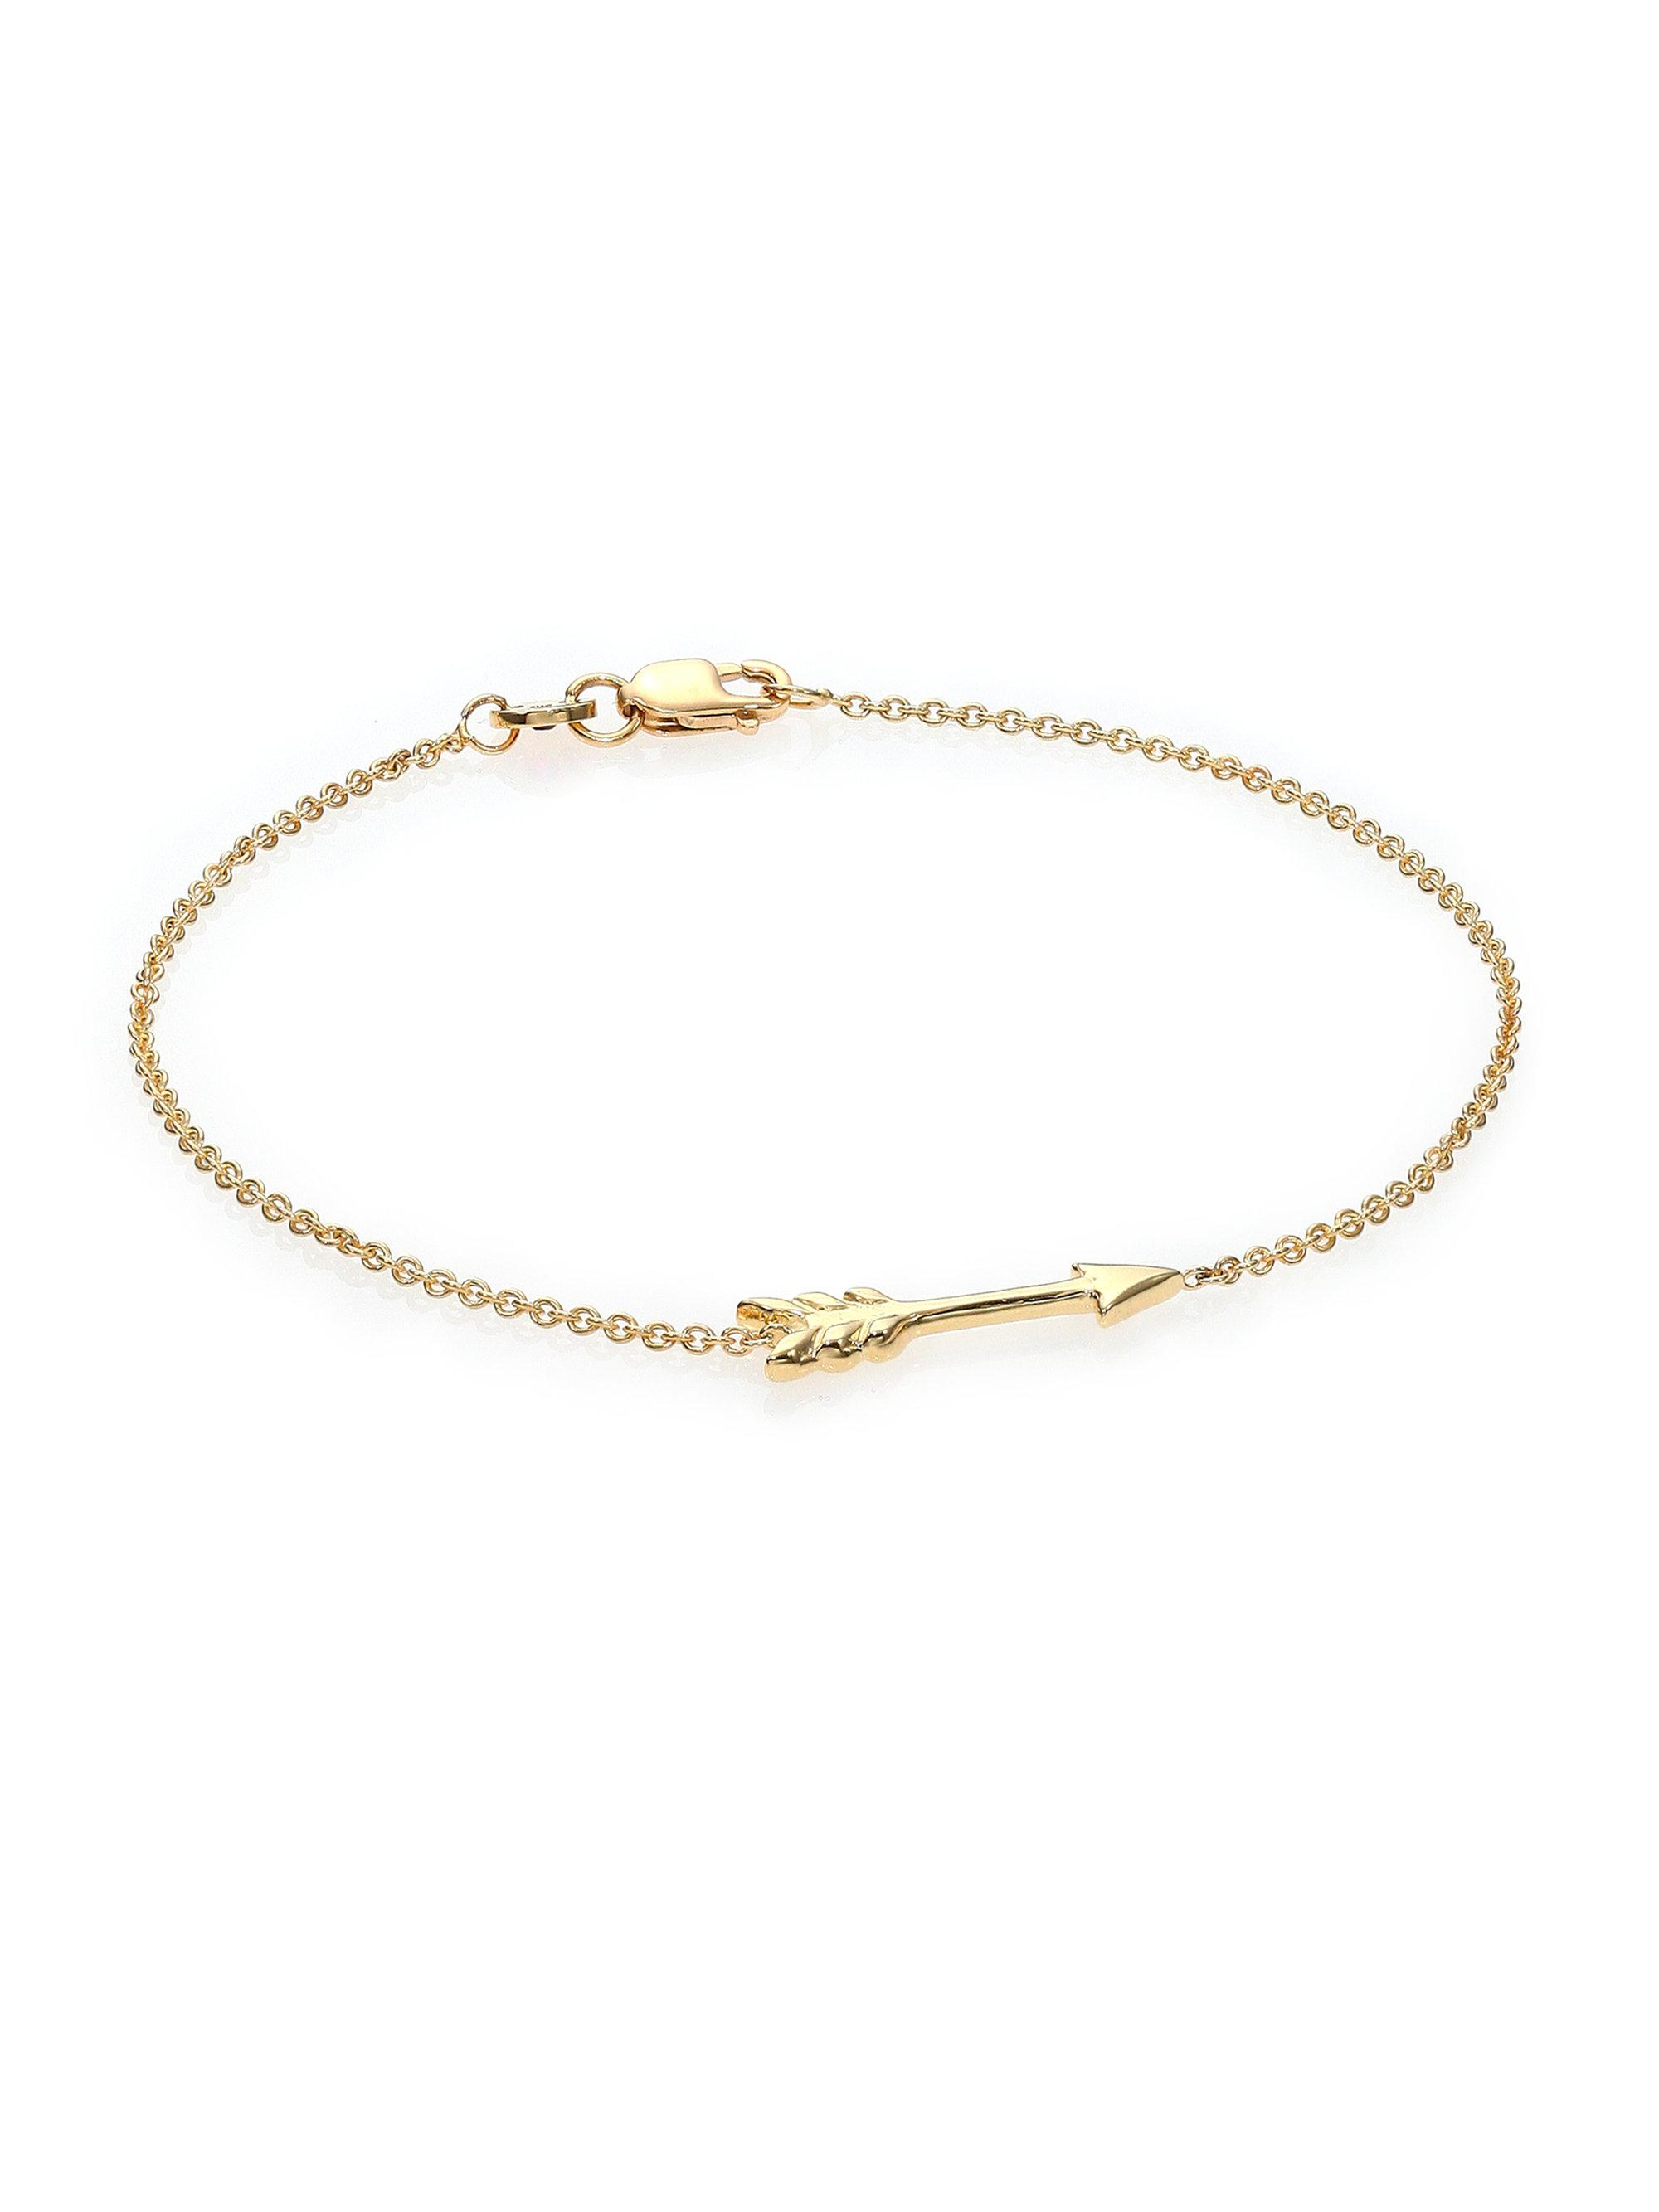 sarah bracelets gold charming arrow bracelet chloe